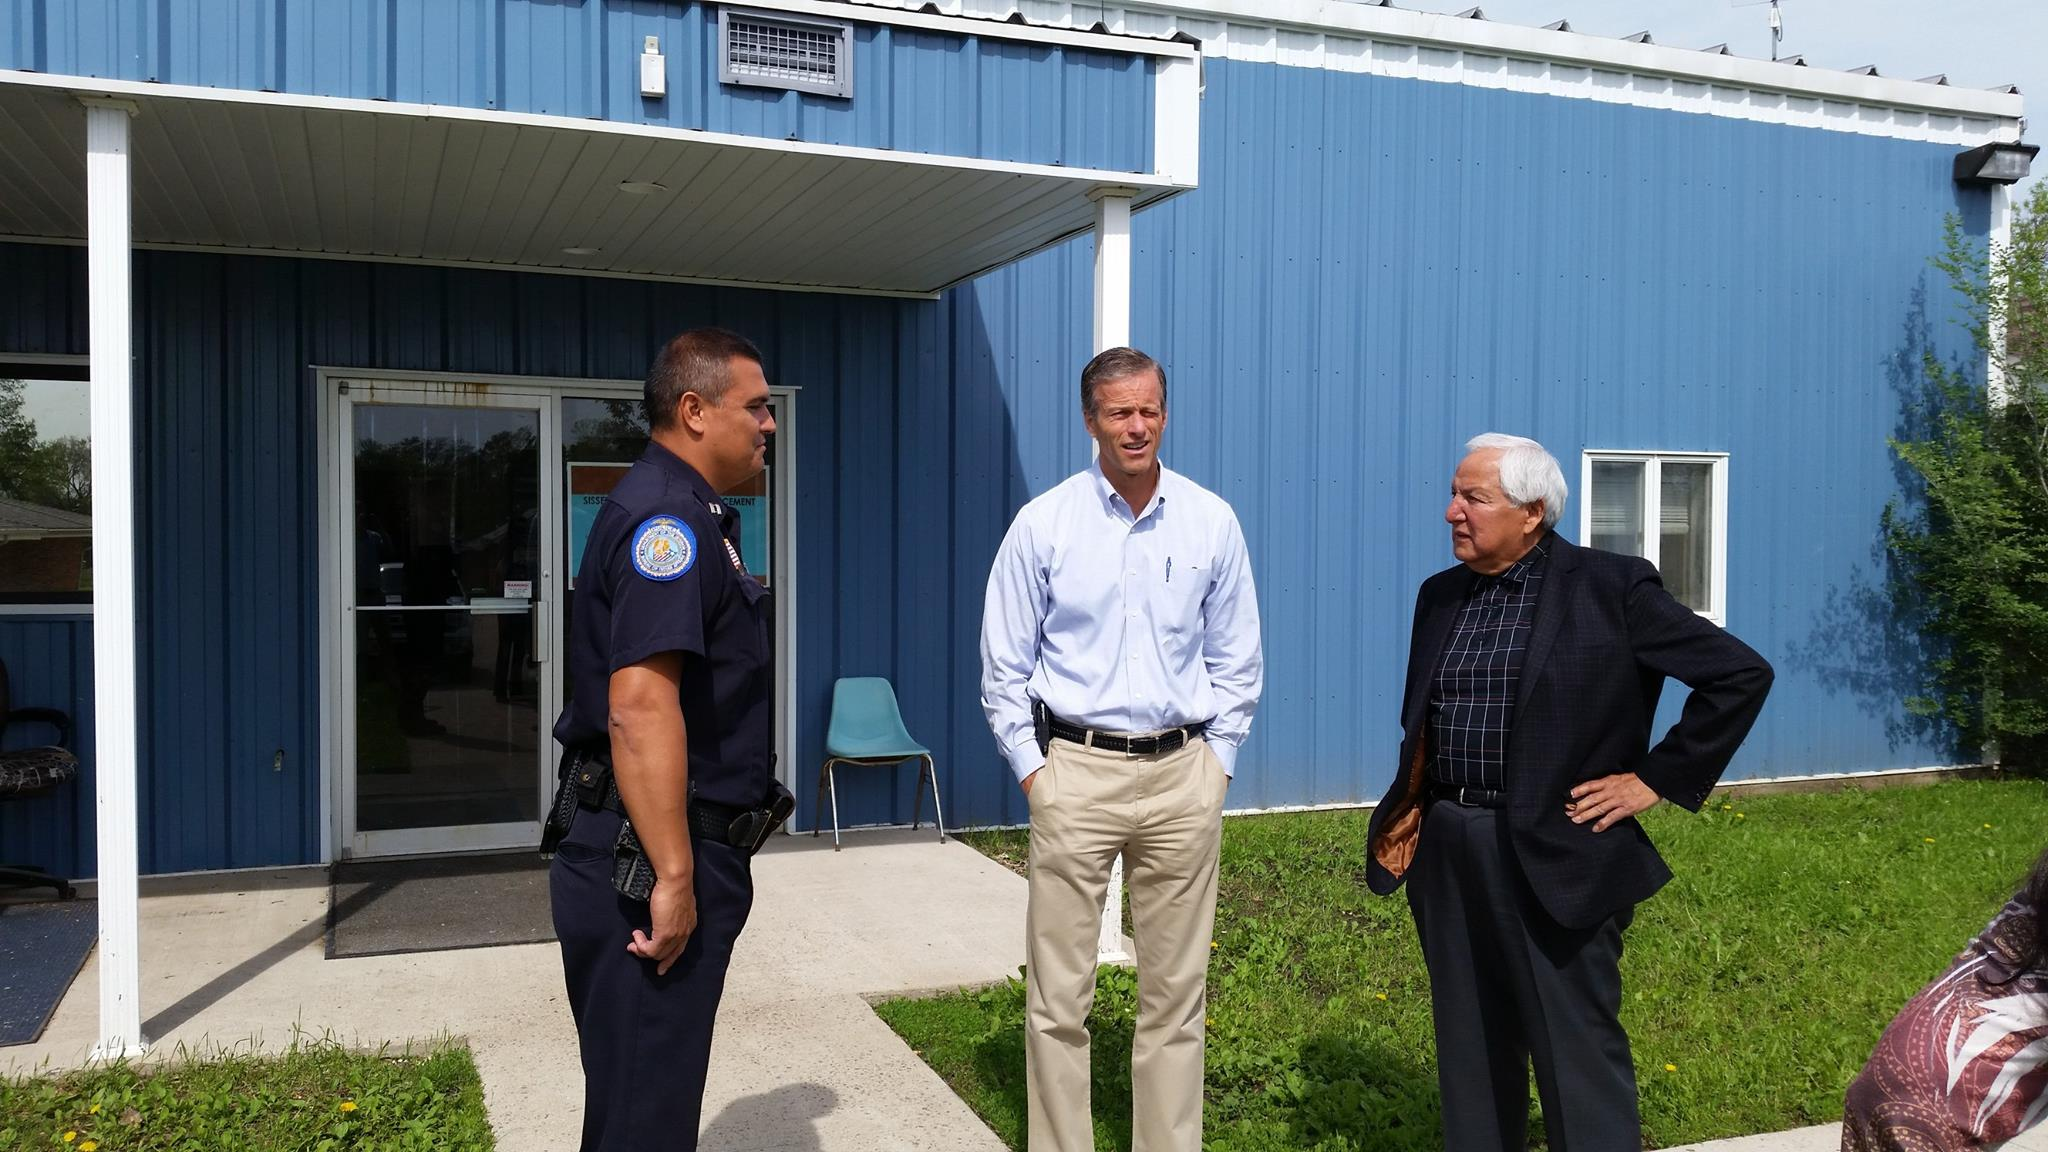 Amendment seeks funding for Indian Country detention facilities